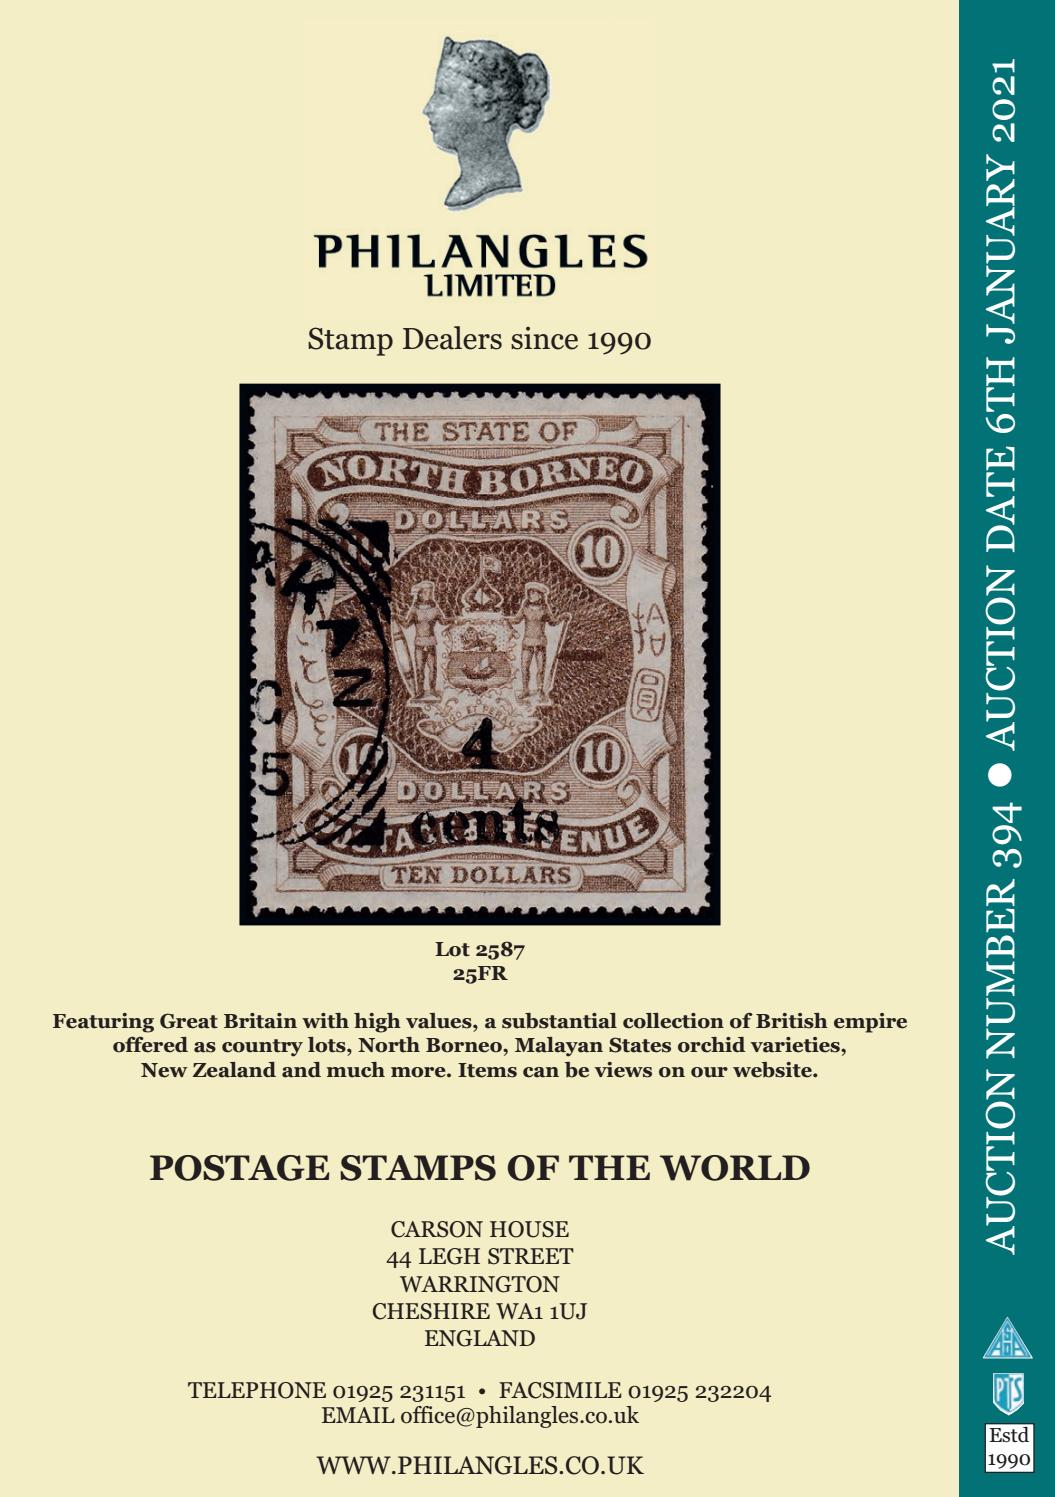 6s Postal Service Christmas Stamp 2021 Philagles 394 Catalogue By Philangles Ltd Issuu